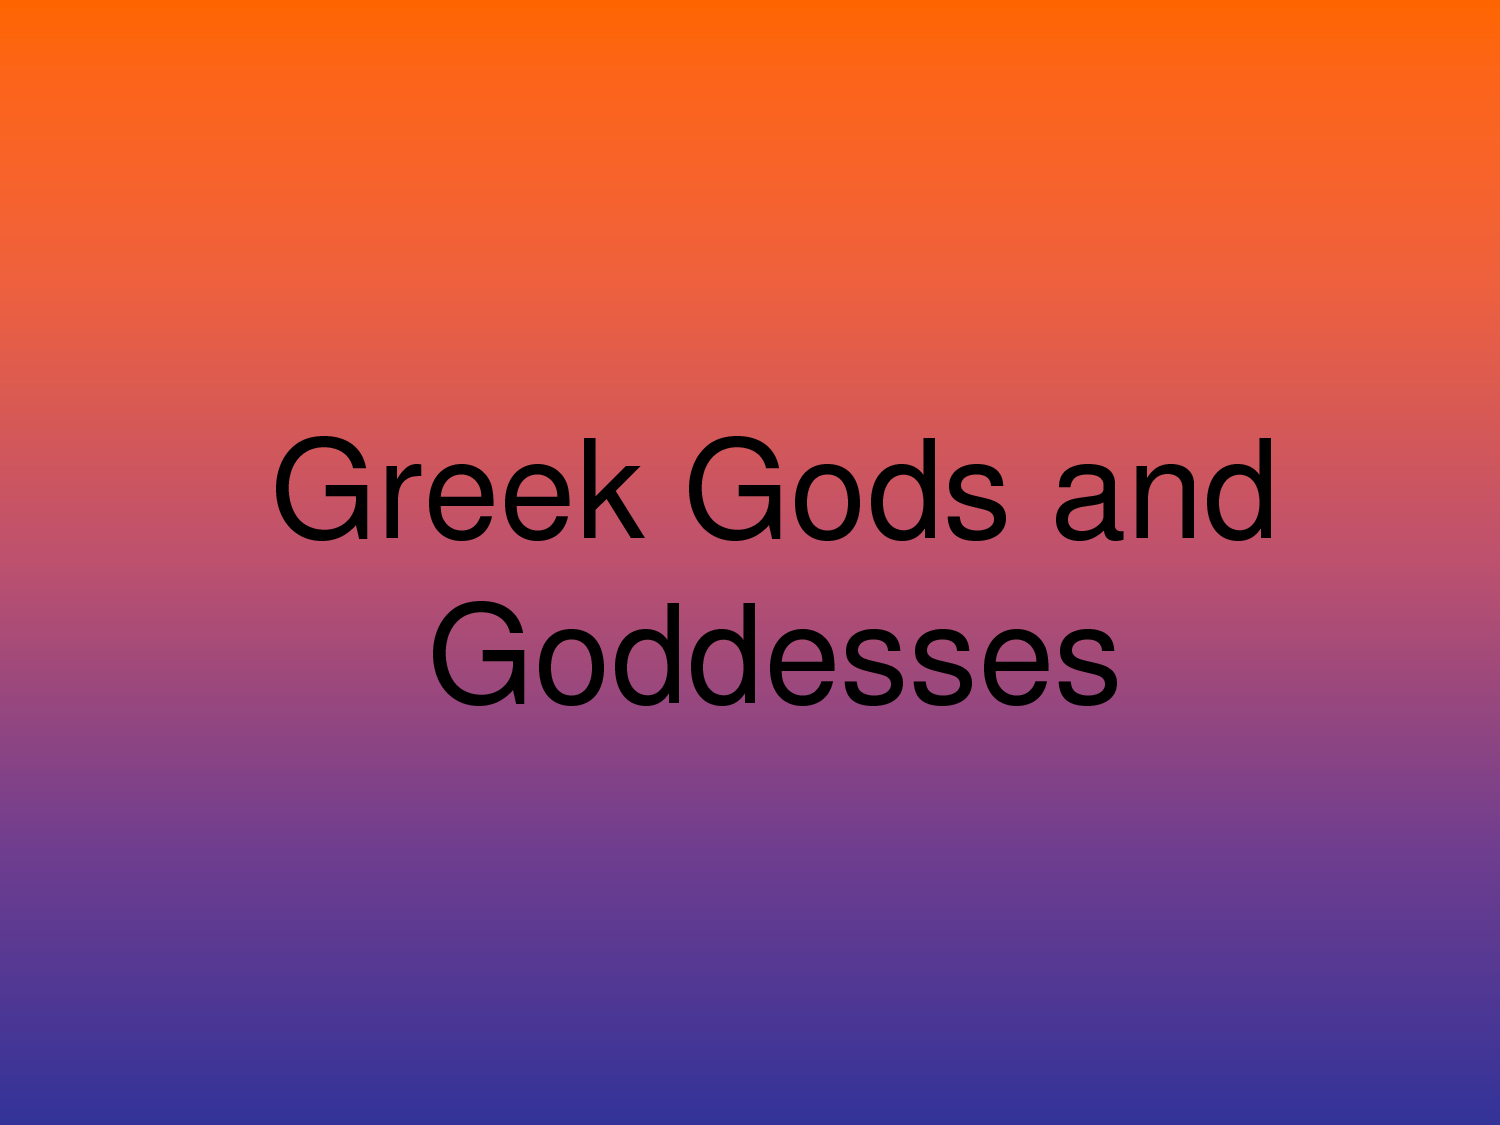 Quotes About Greek Mythology: Greek Gods And Goddesses Quotes. QuotesGram